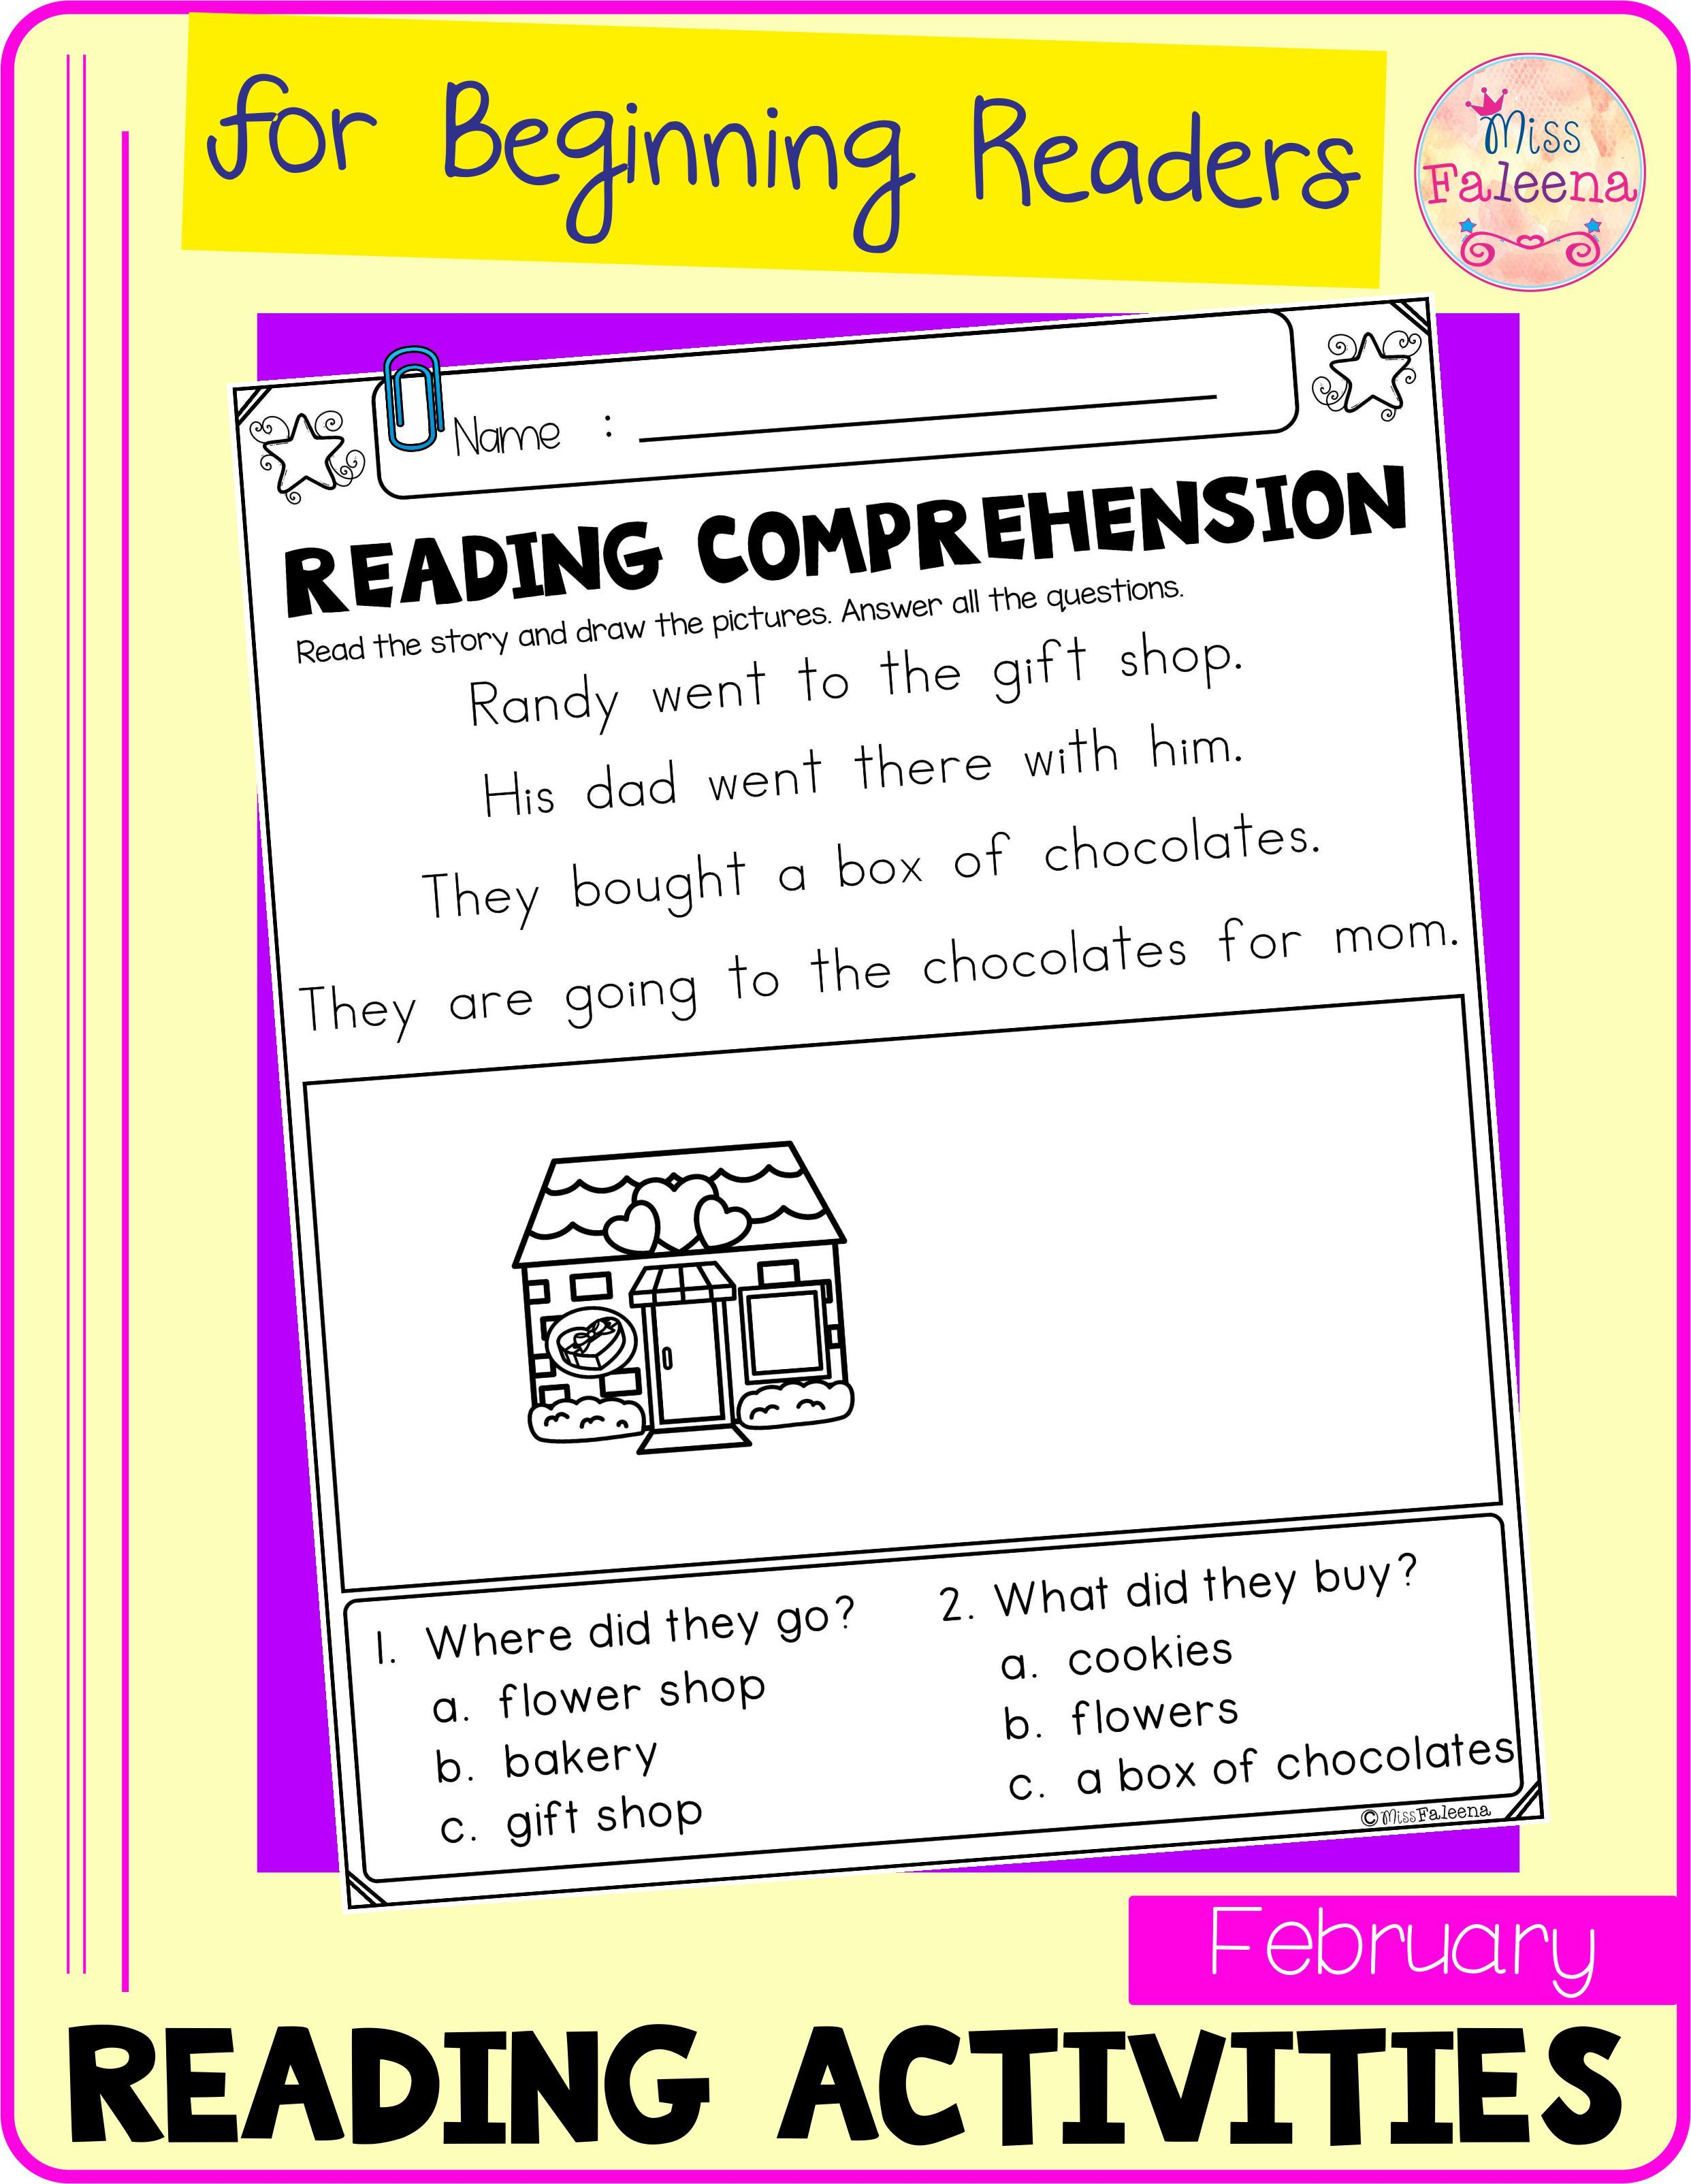 February Reading Activities For Beginning Readers